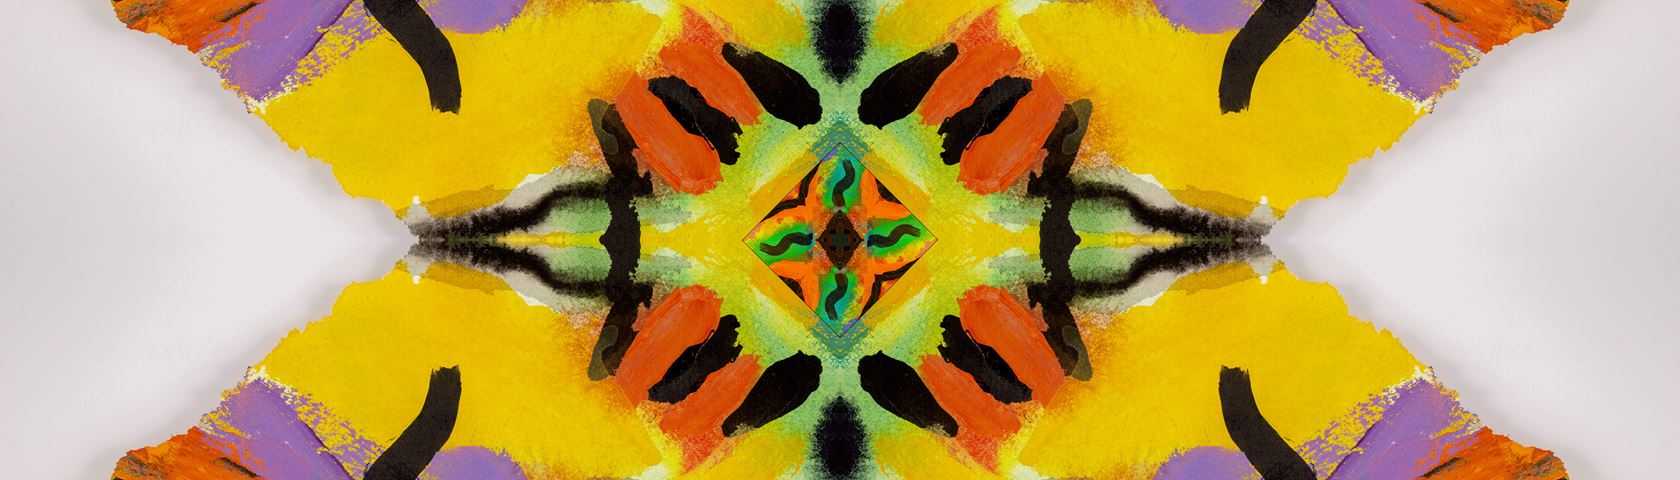 Art Symmetry with Wild Colors